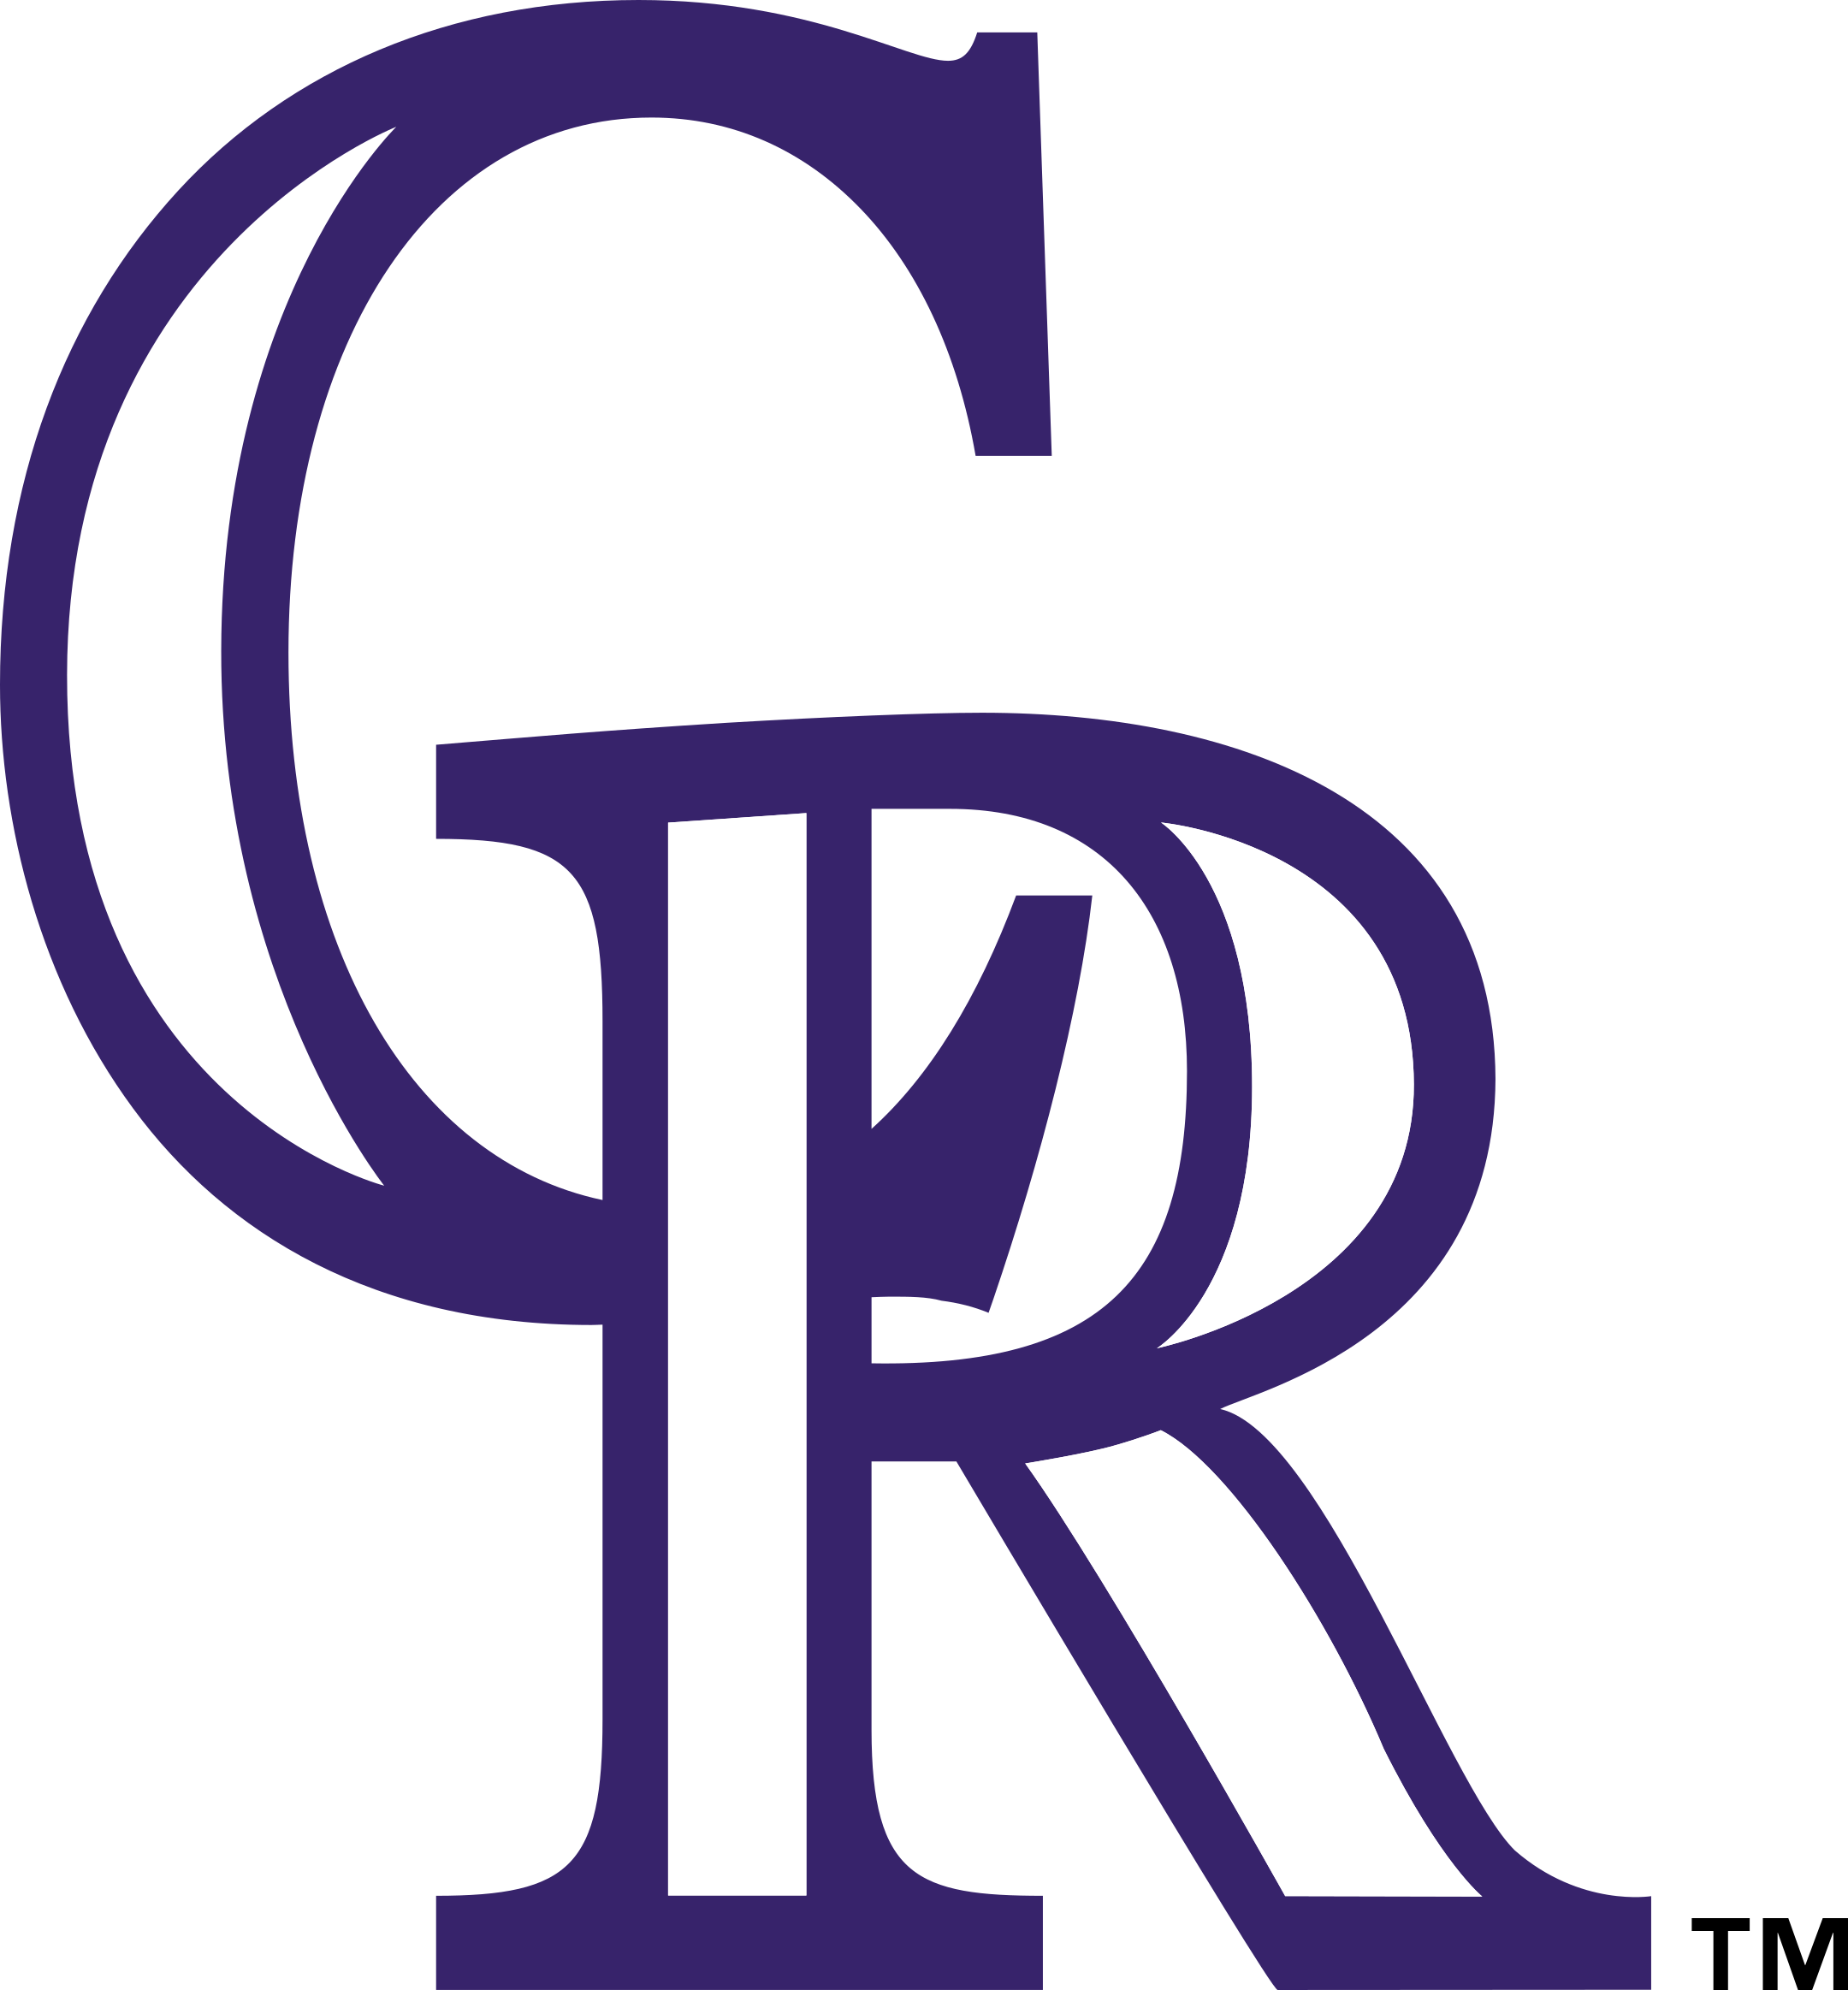 colorado rockies logo 1 - Colorado Rockies Logo